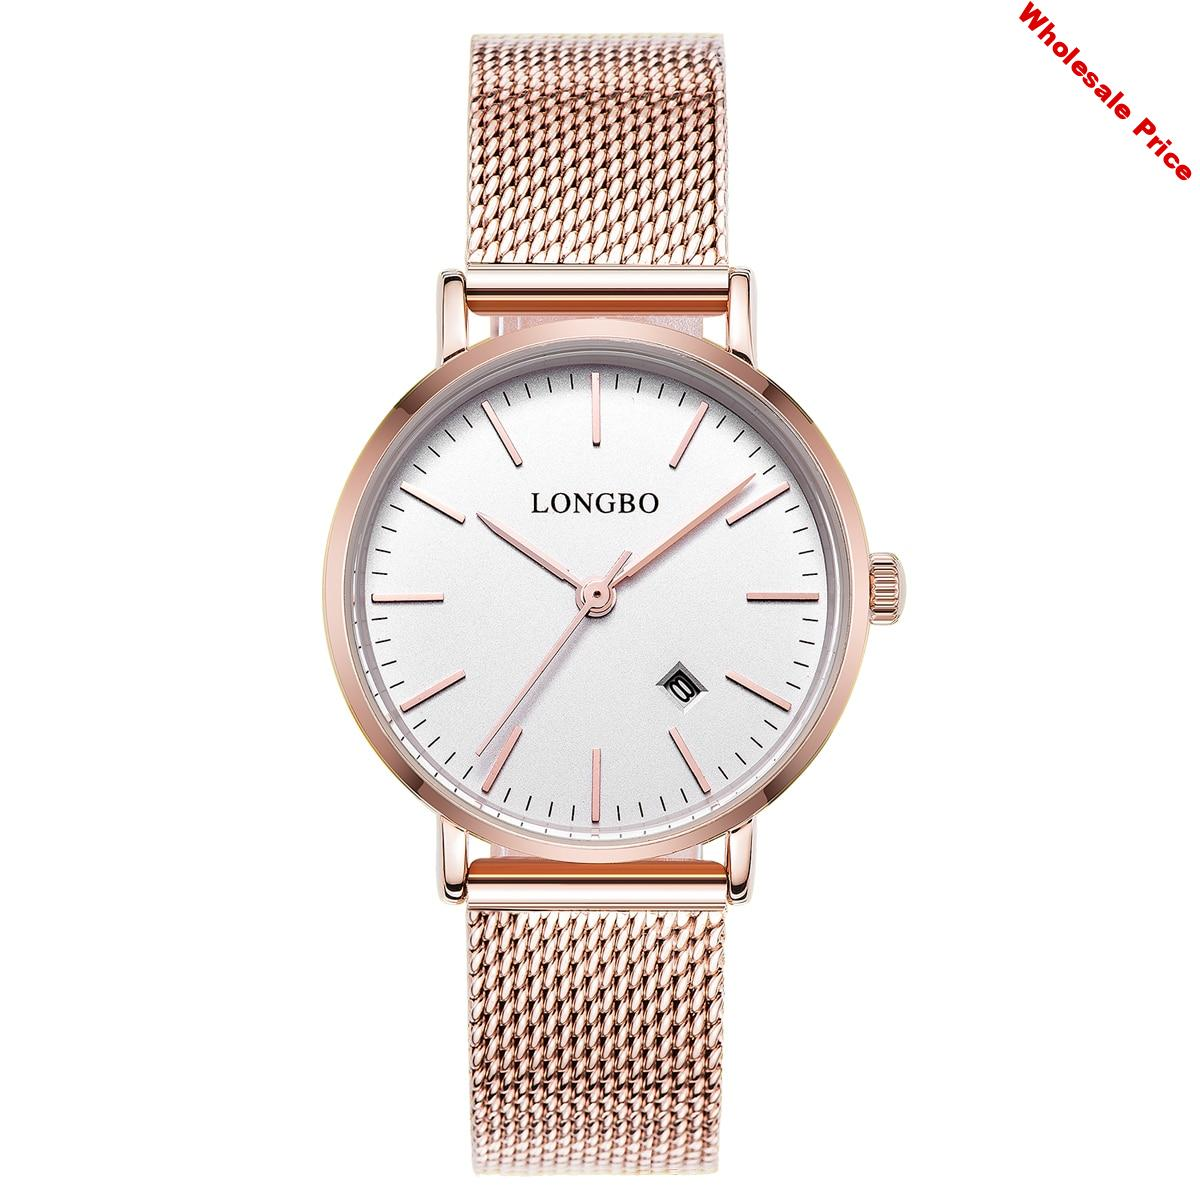 Longbo Luxury Lovers Watches Men Women Automatical Calendar Mesh Stainless Steel Adjustable Band Quartz Gift Watch Montre Homme